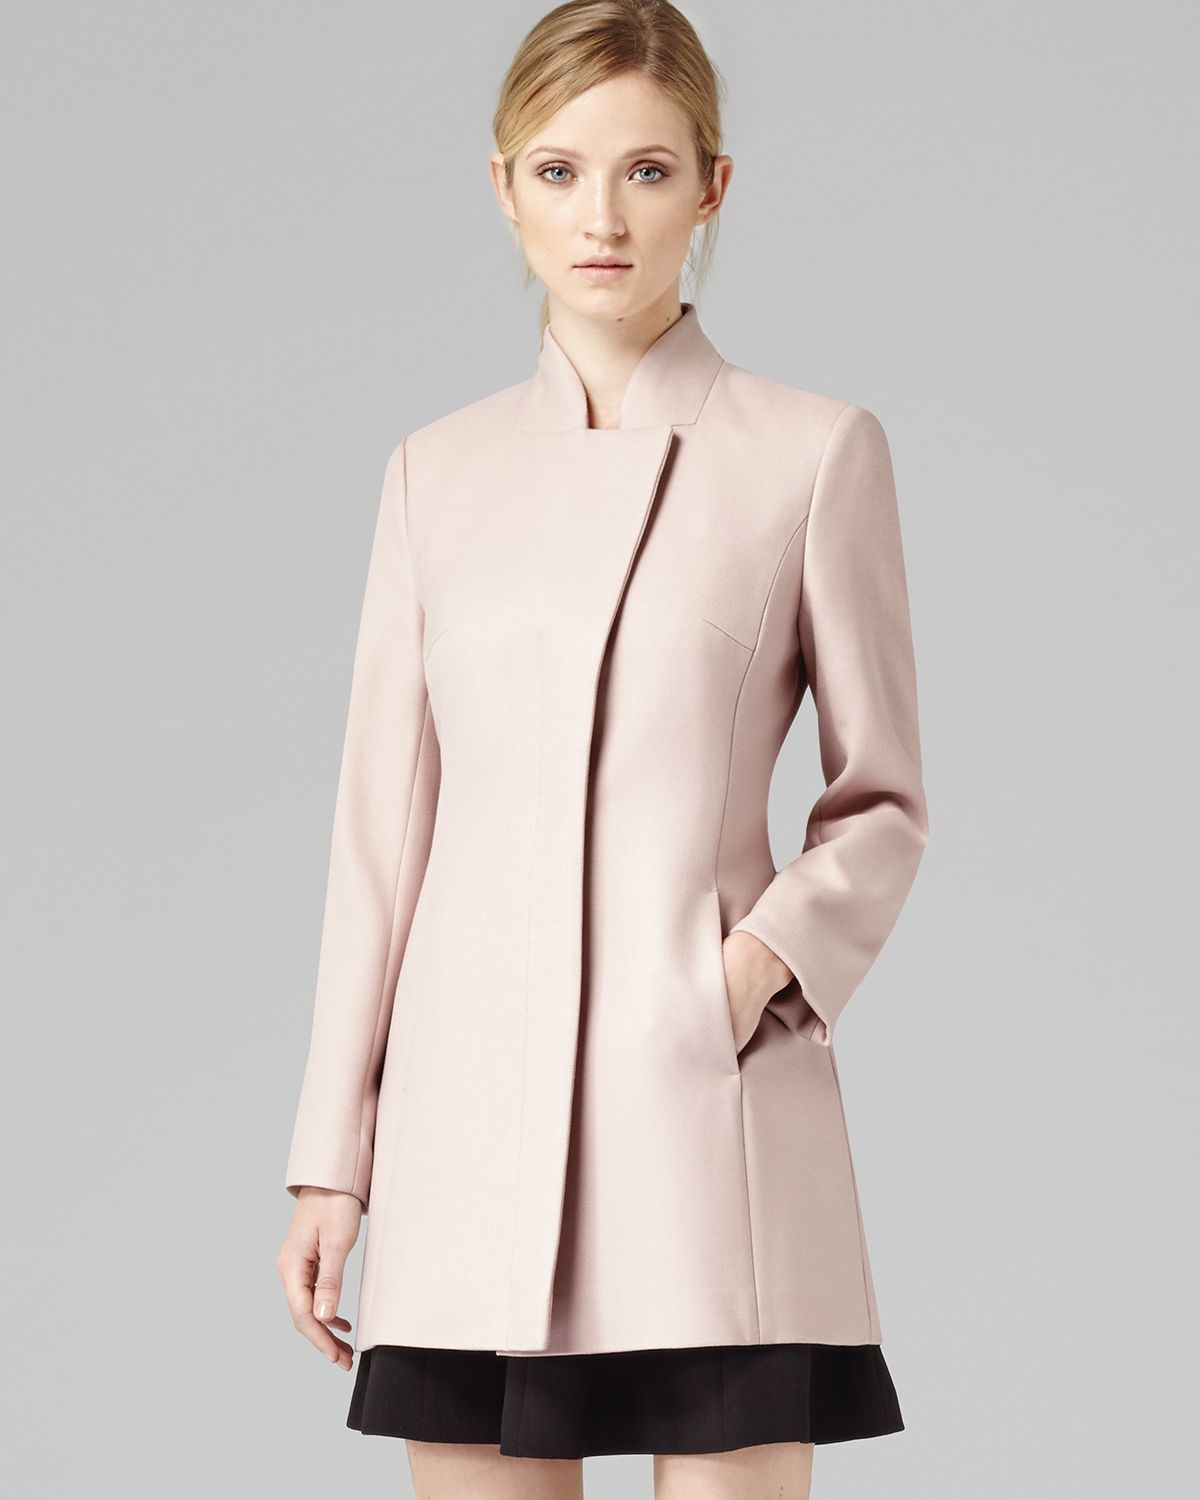 Images of Blush Pink Coat - Reikian